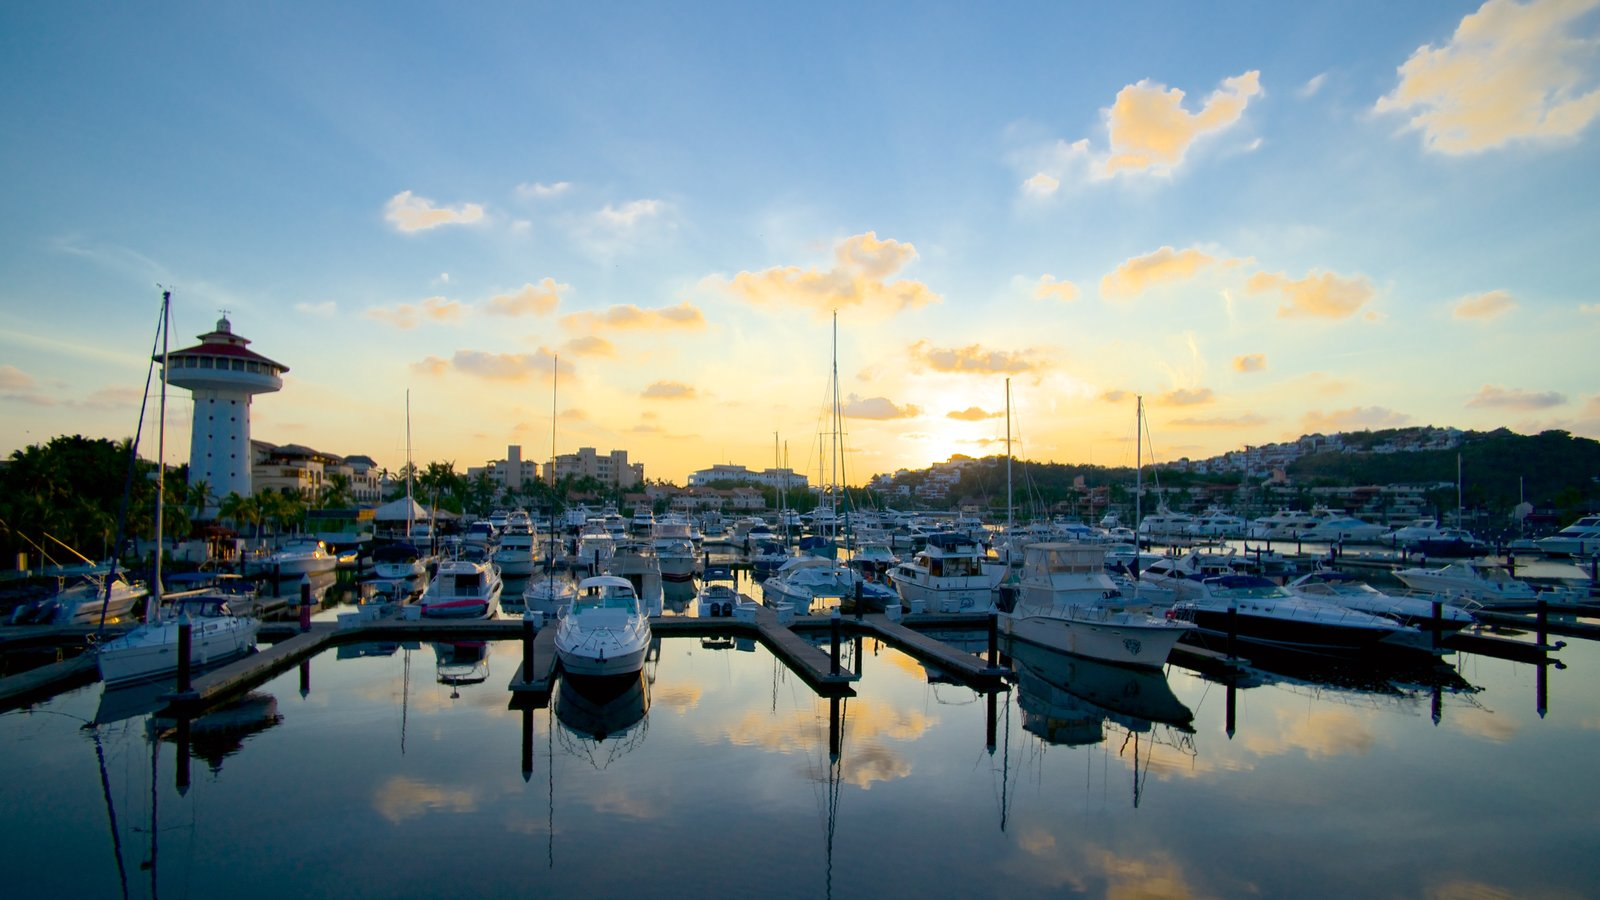 Marina Ixtapa which includes a sunset and a marina